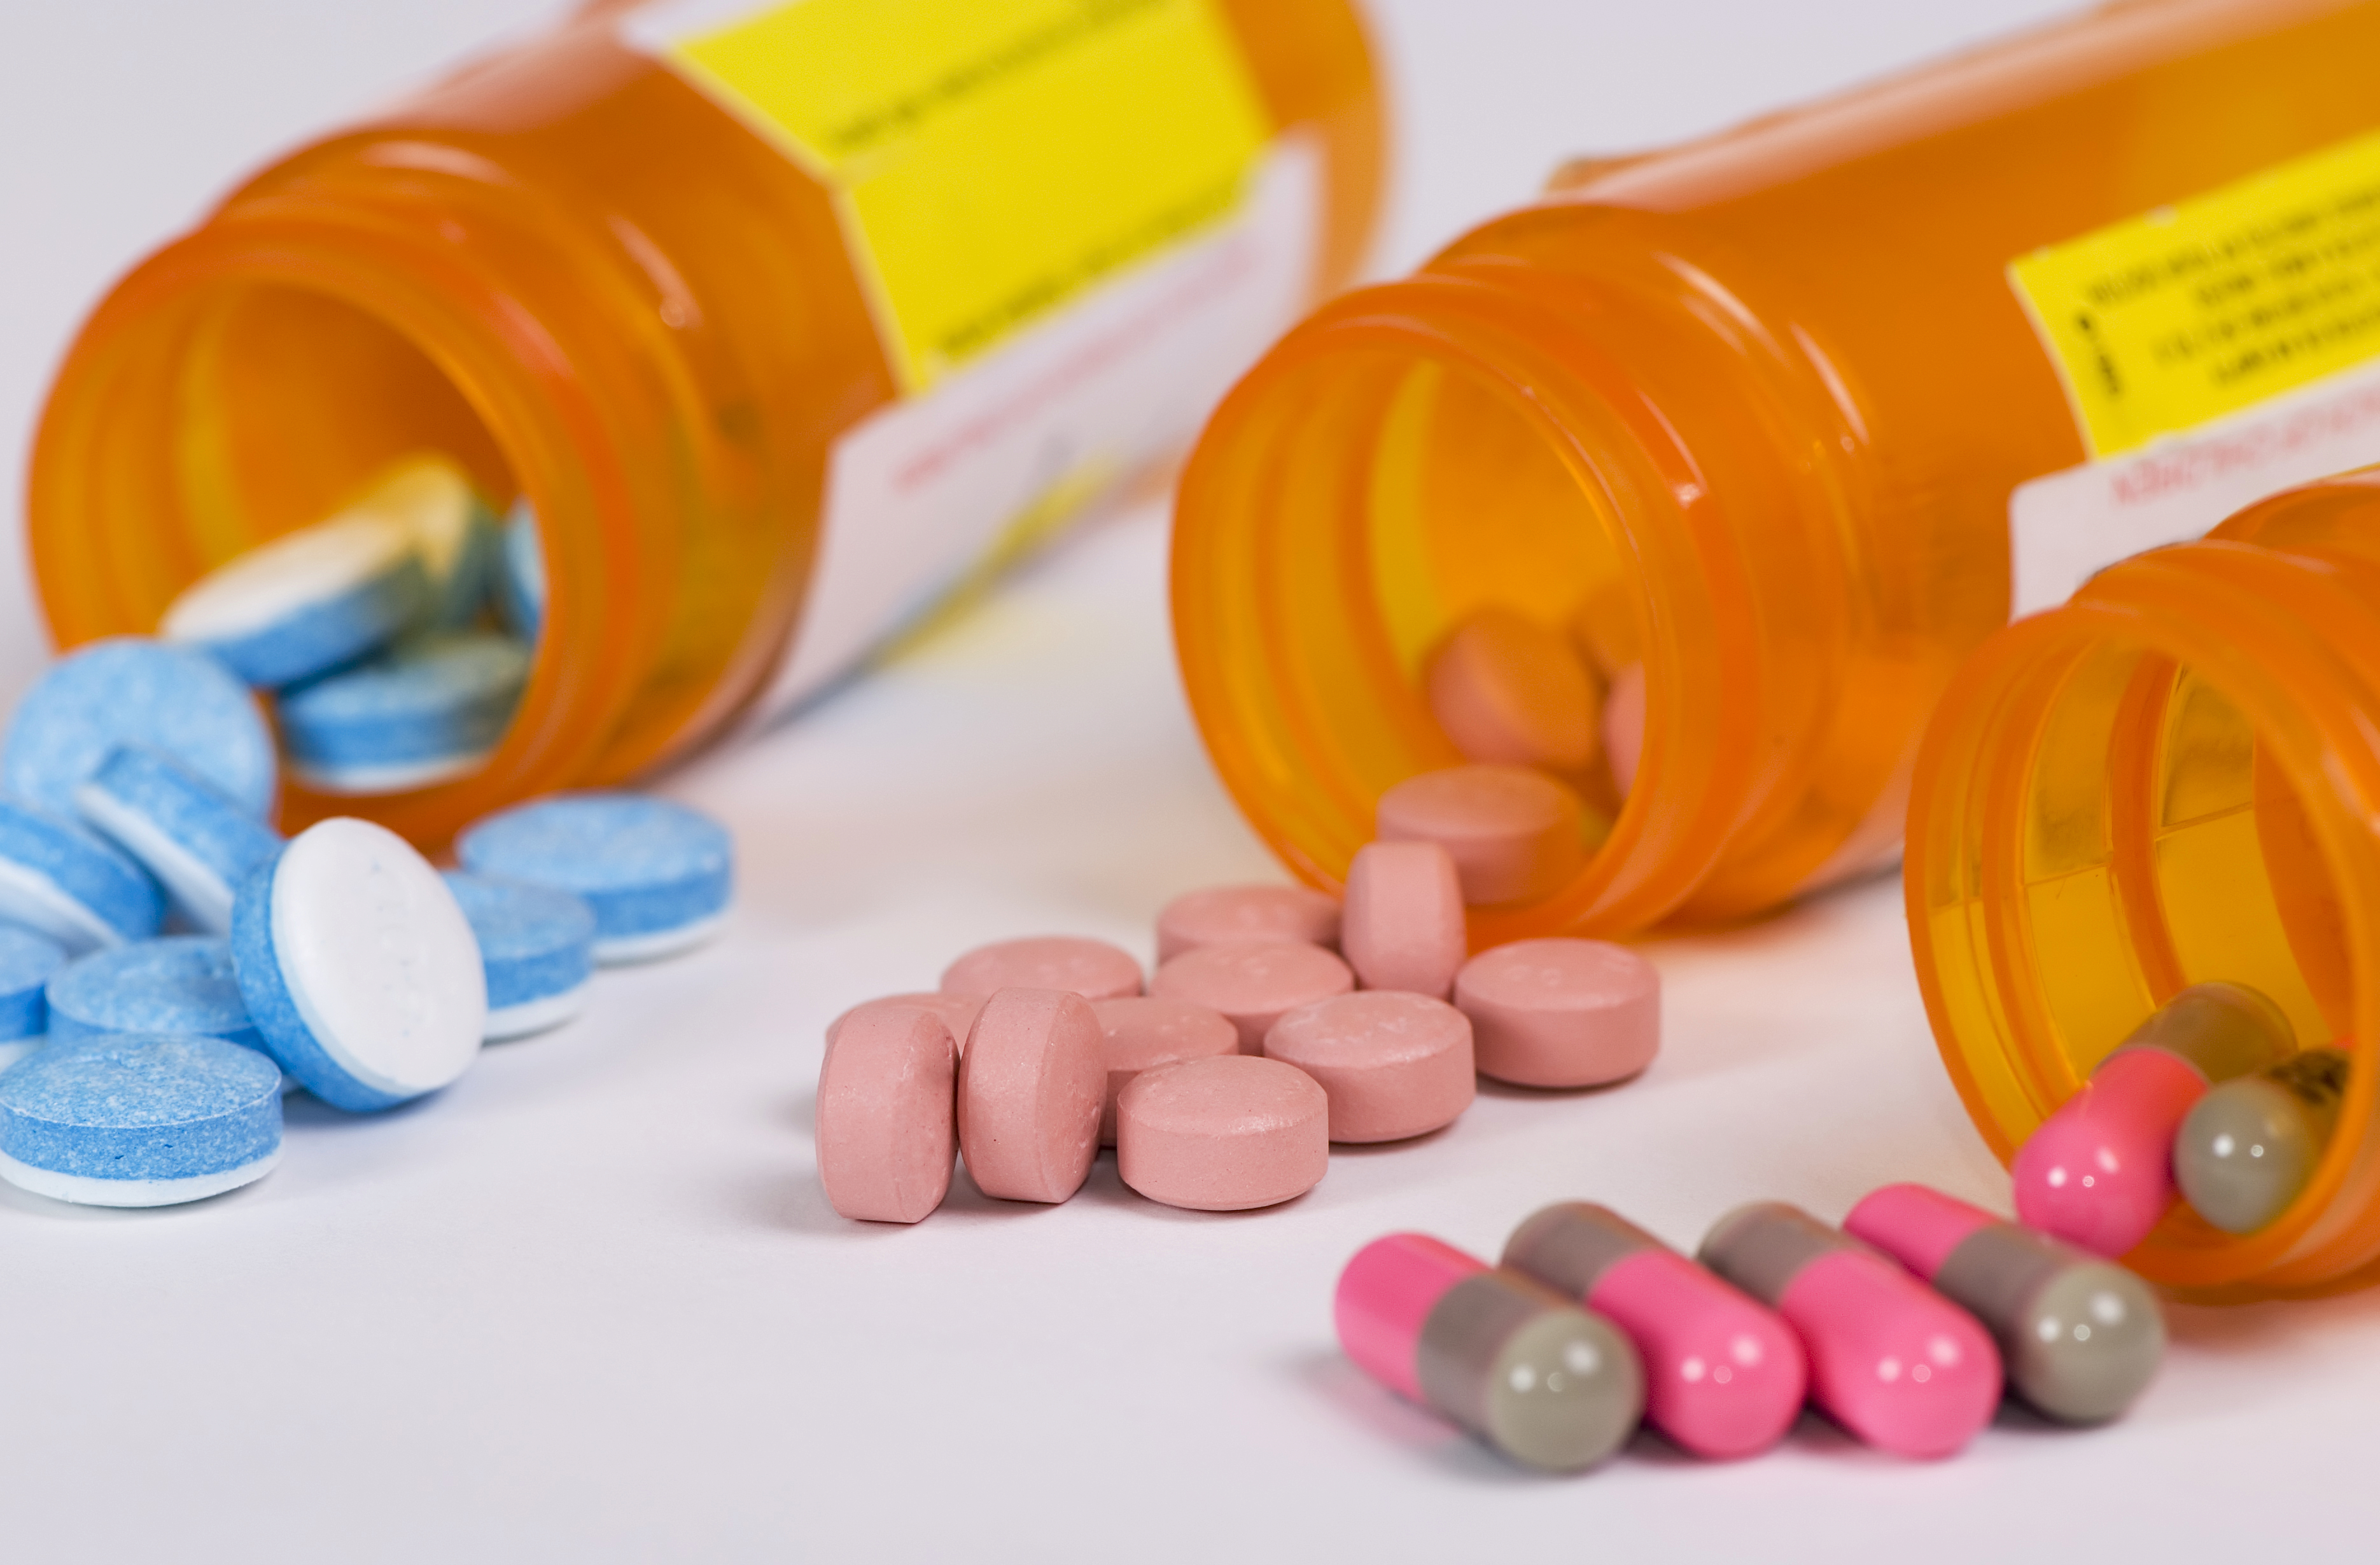 Medication Errors and Other Preventable Neglect - Princeton Nursing Home Abuse Lawyers Kenneth LaBore and Suzanne Scheller